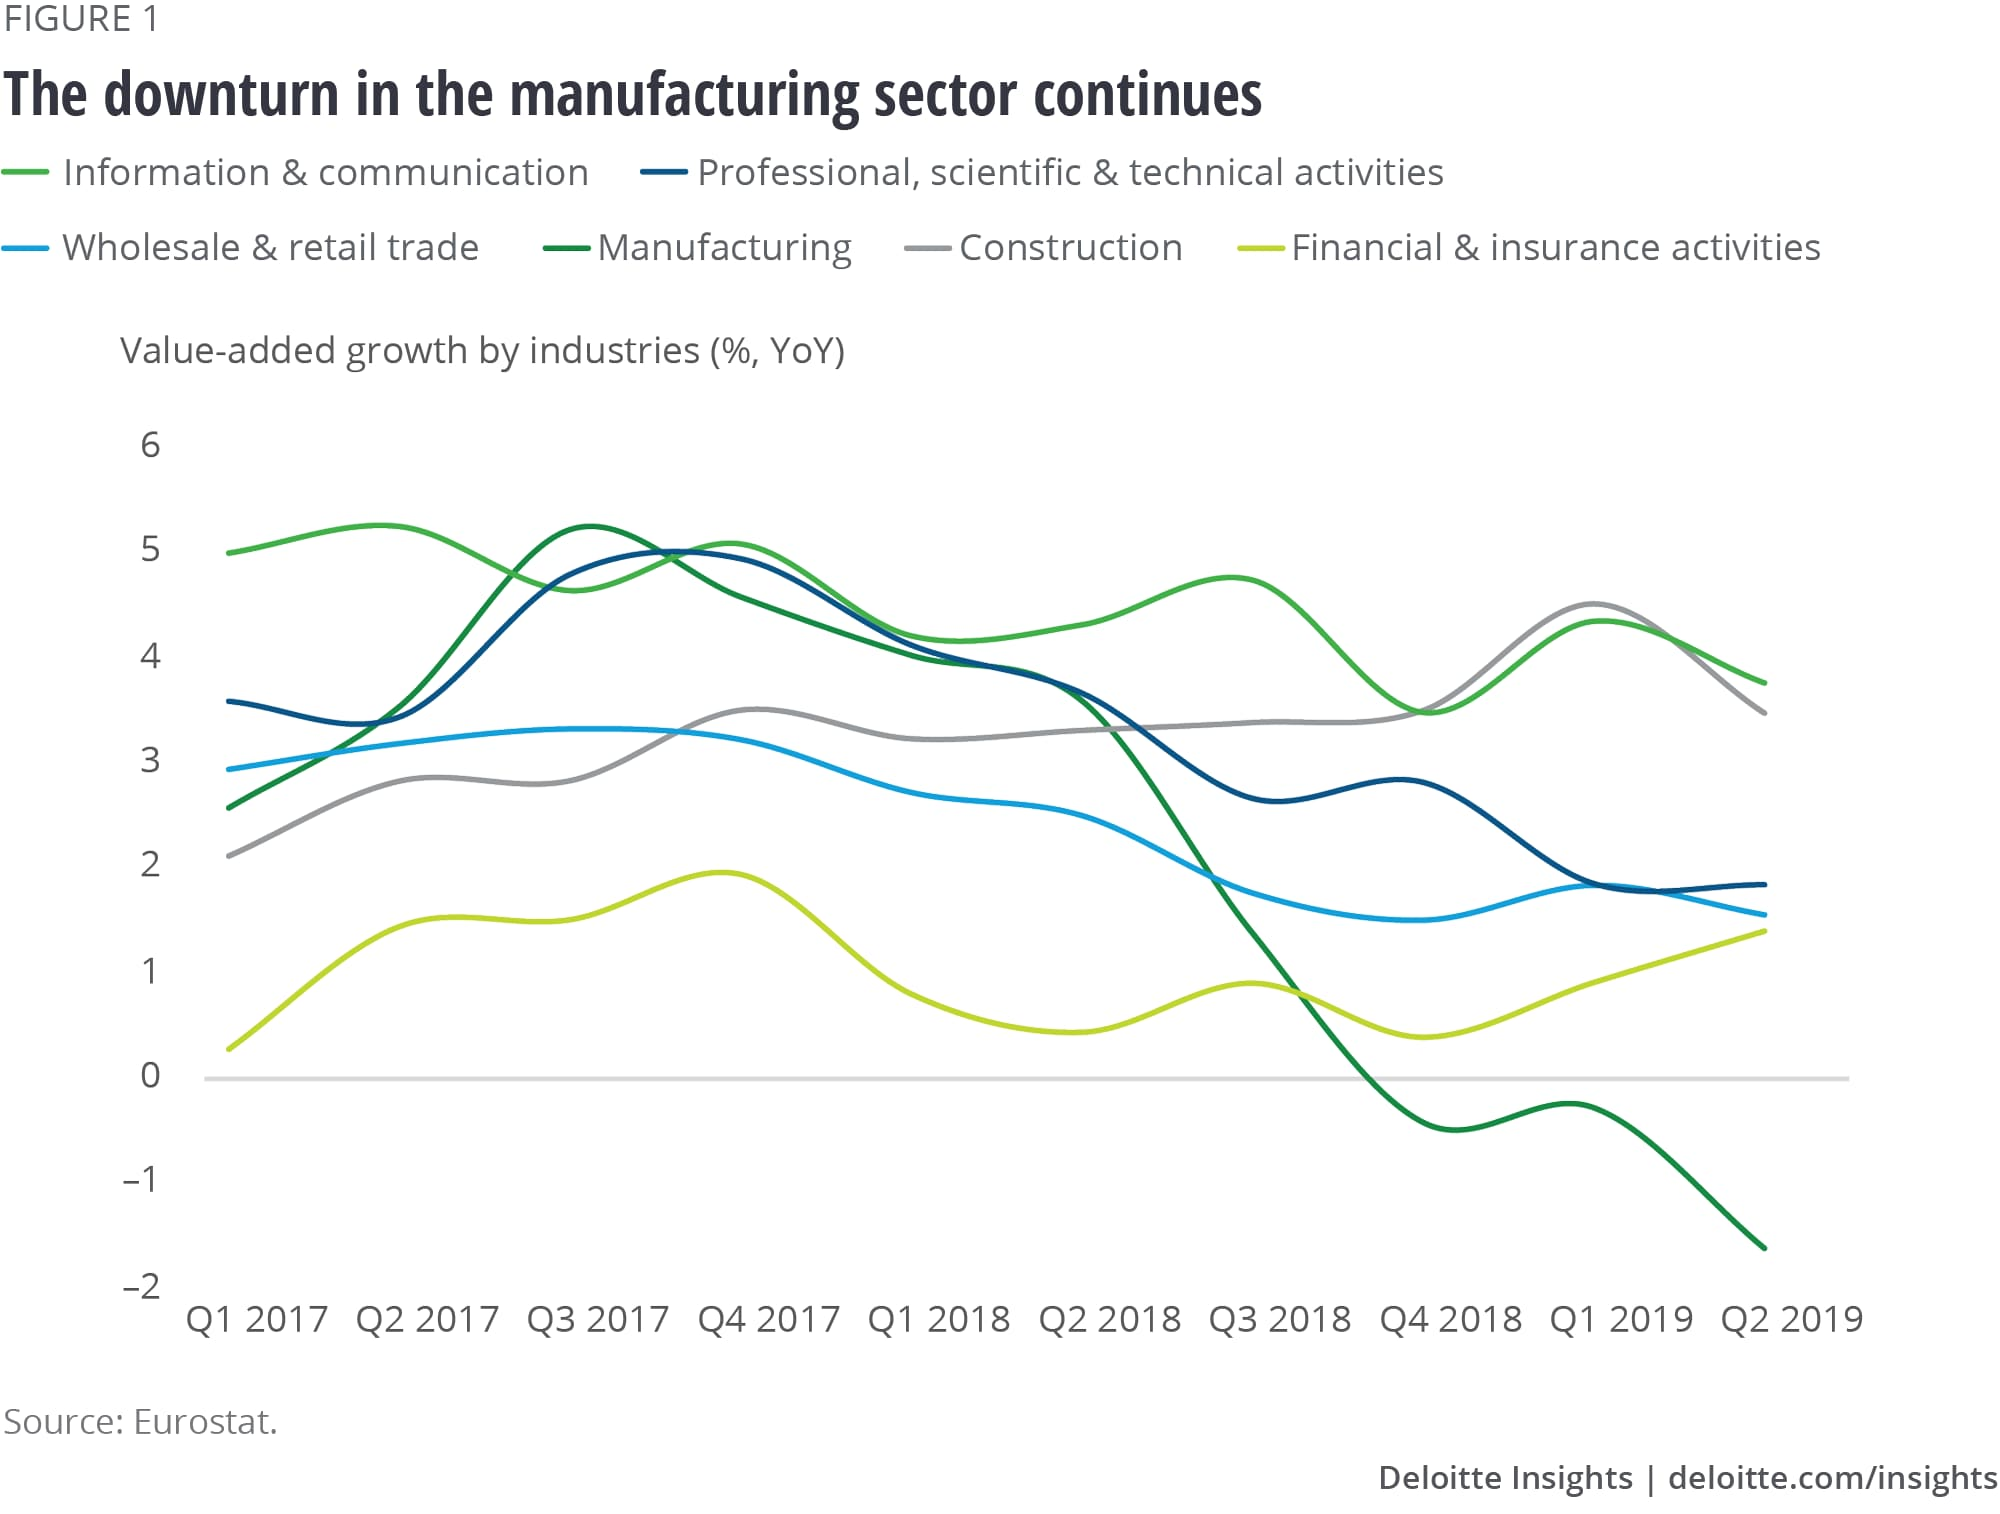 Downturn in the manufacturing sector continues